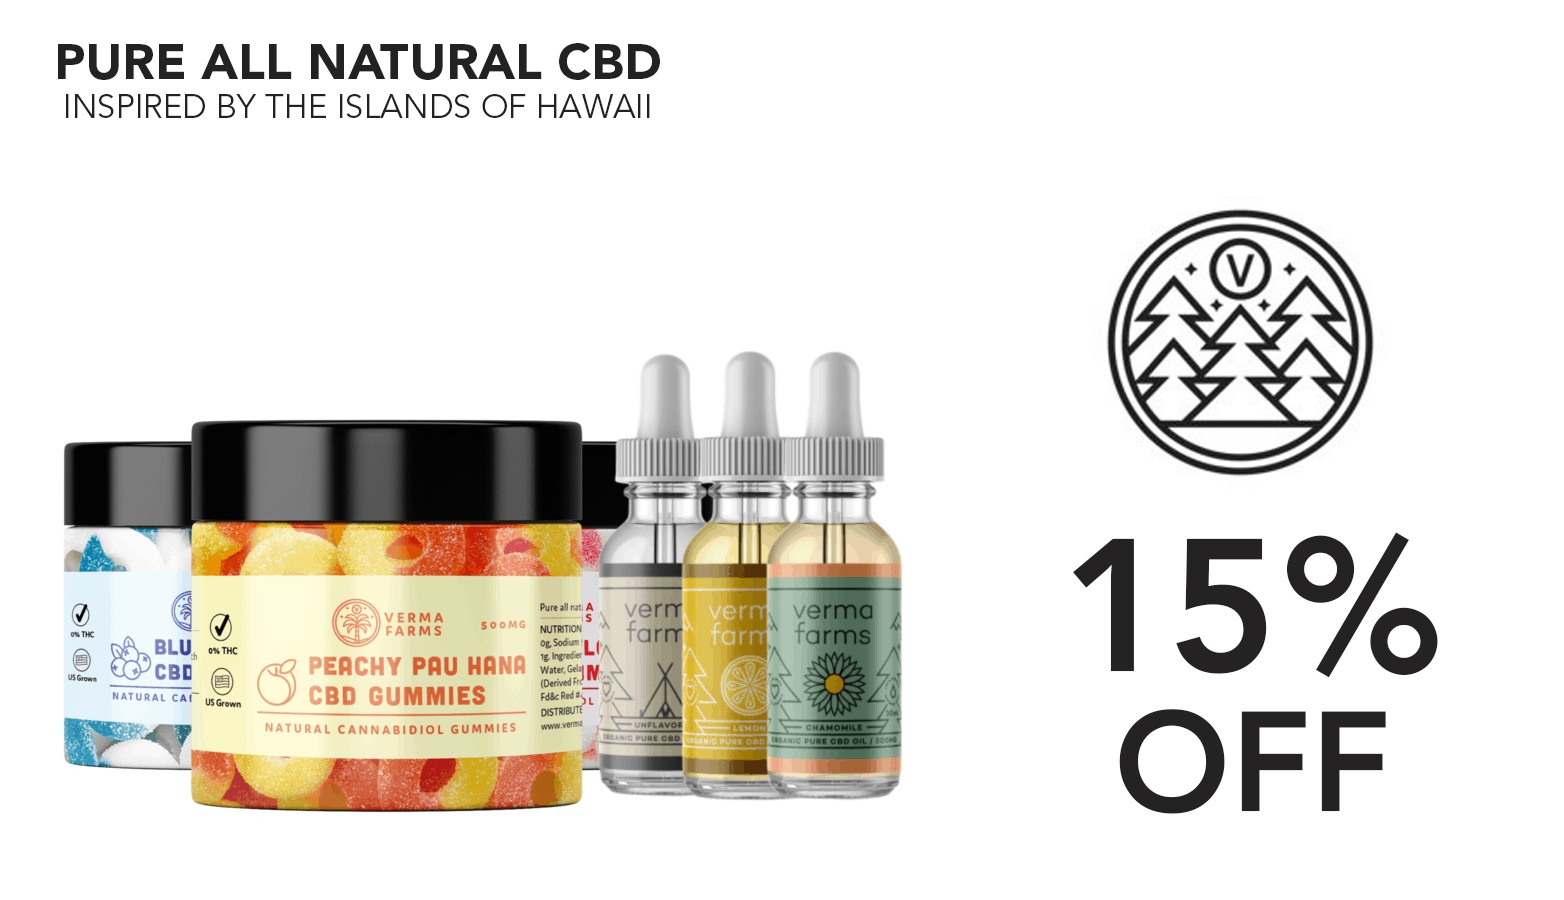 Verma Farms CBD Coupon Code Discount